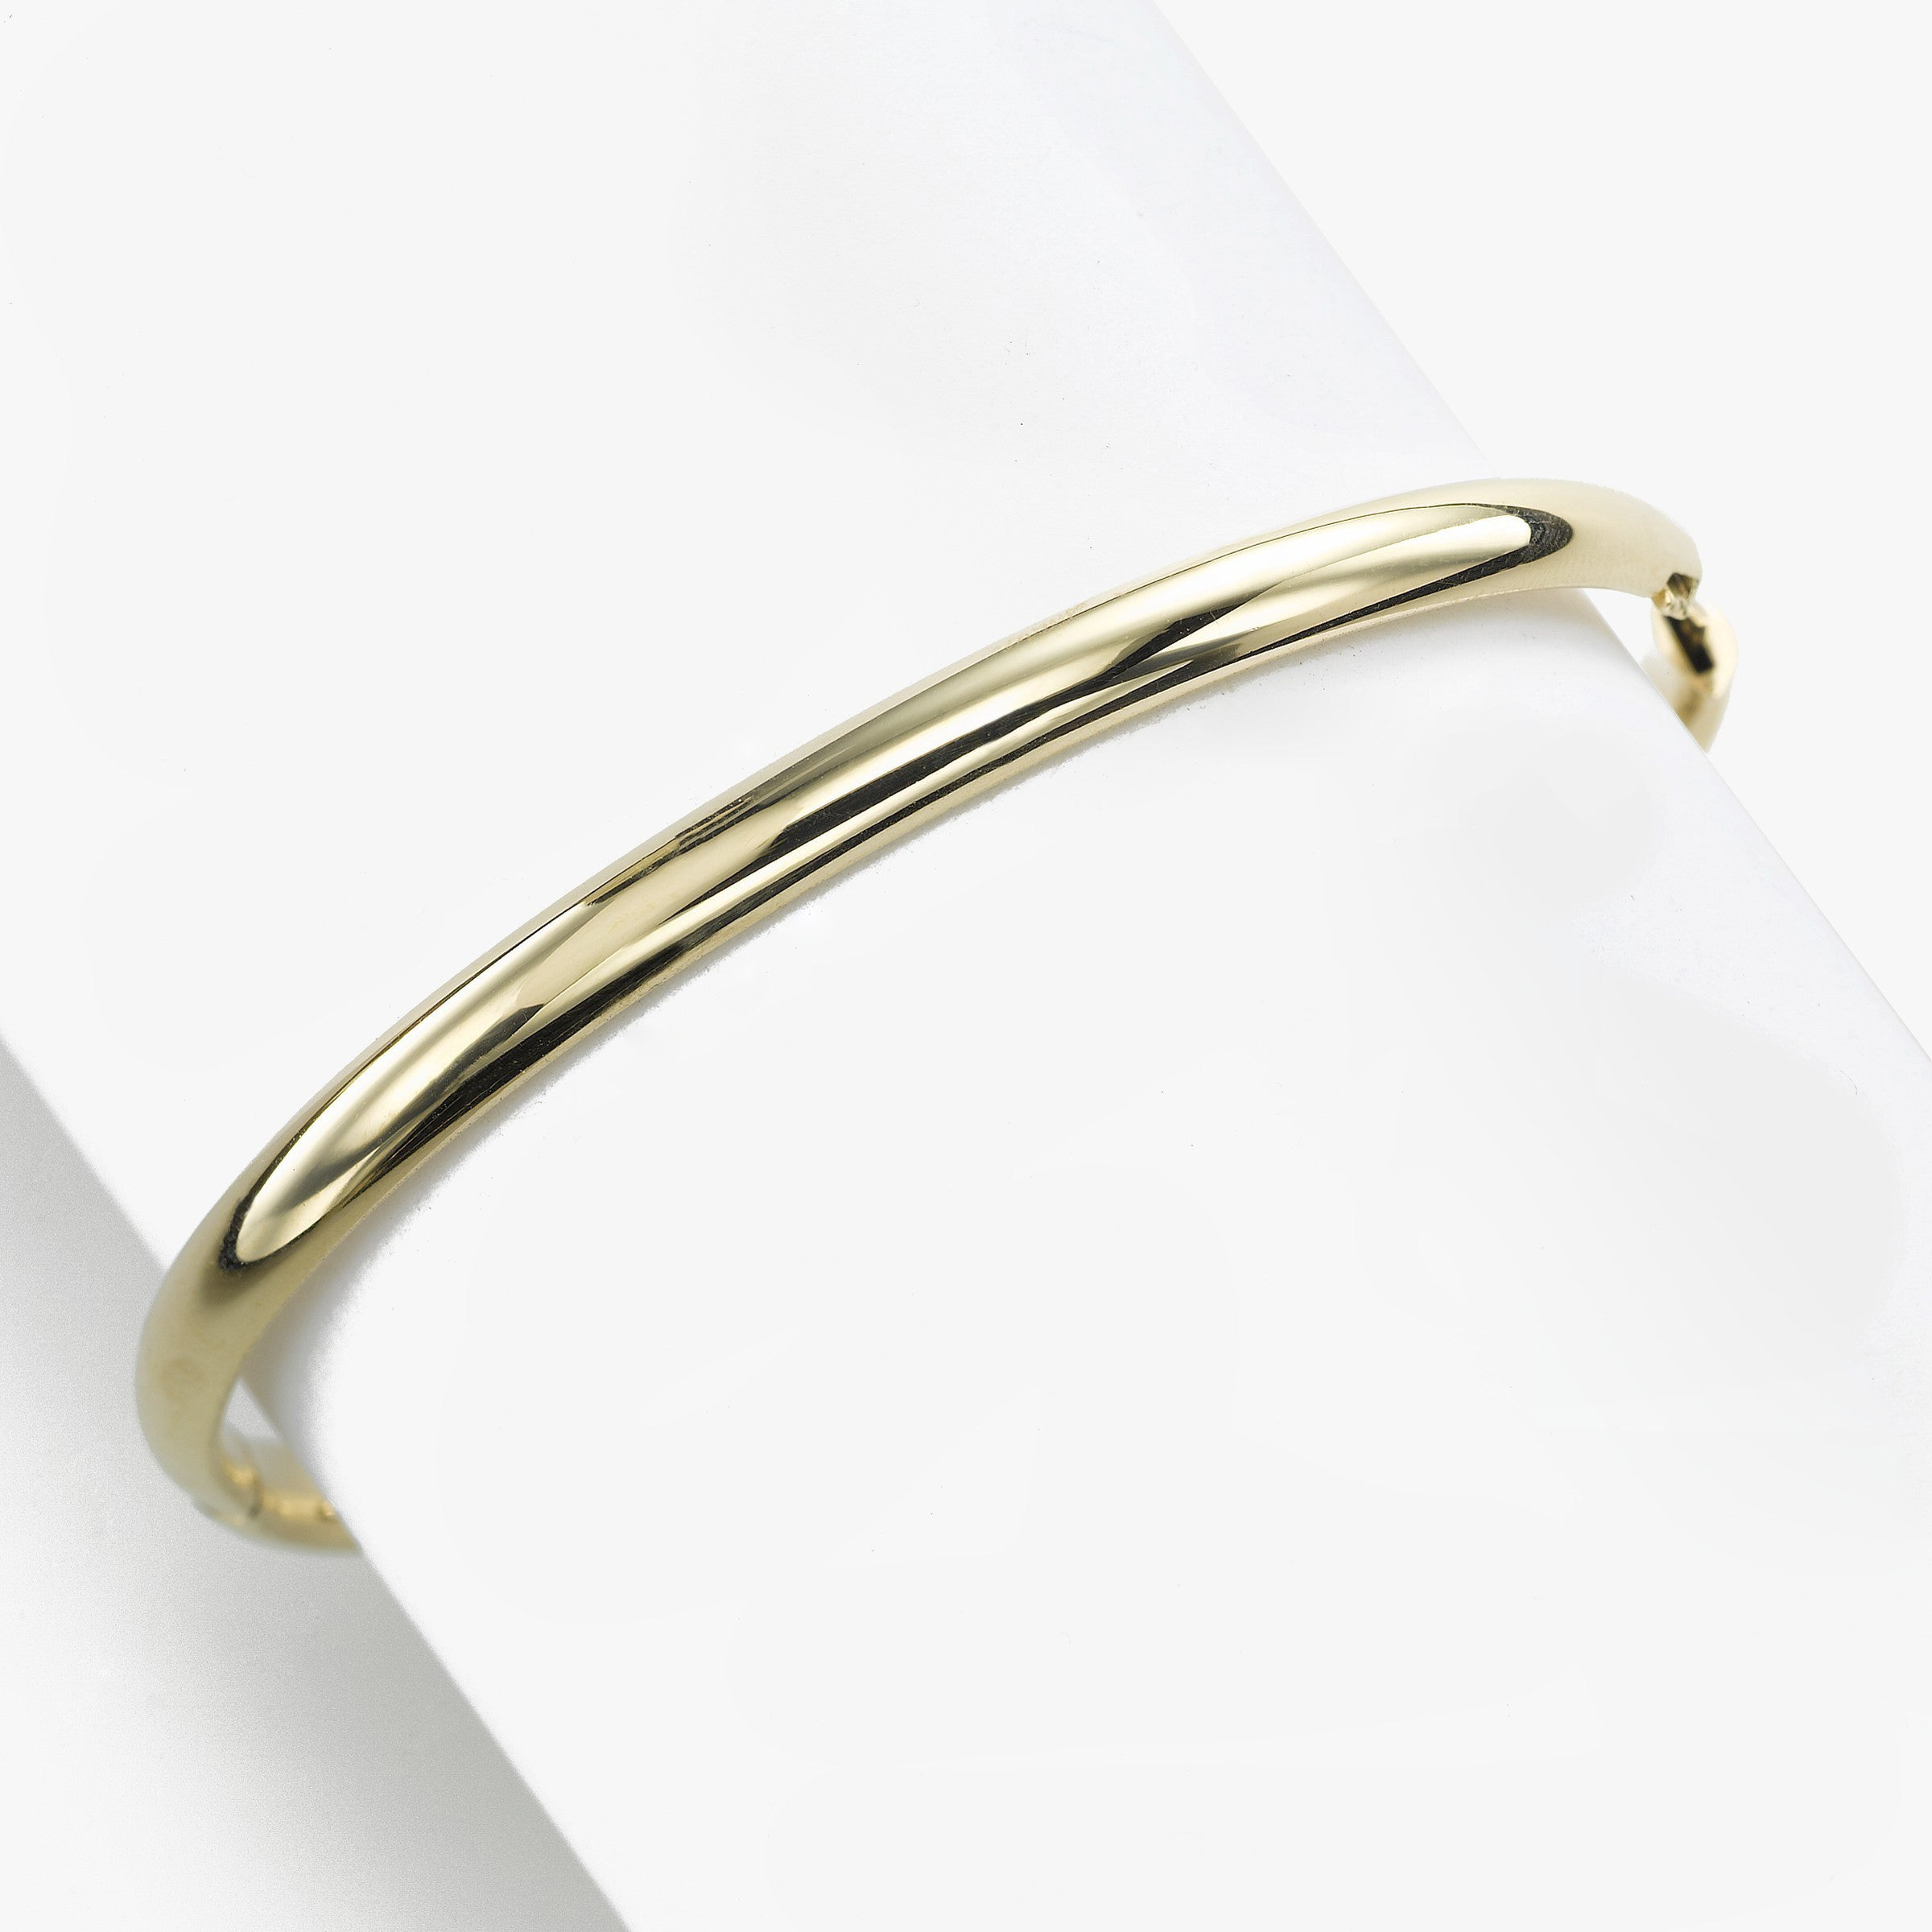 Shiny Domed Bangle Bracelet, .20 Inch, 14K Yellow Gold